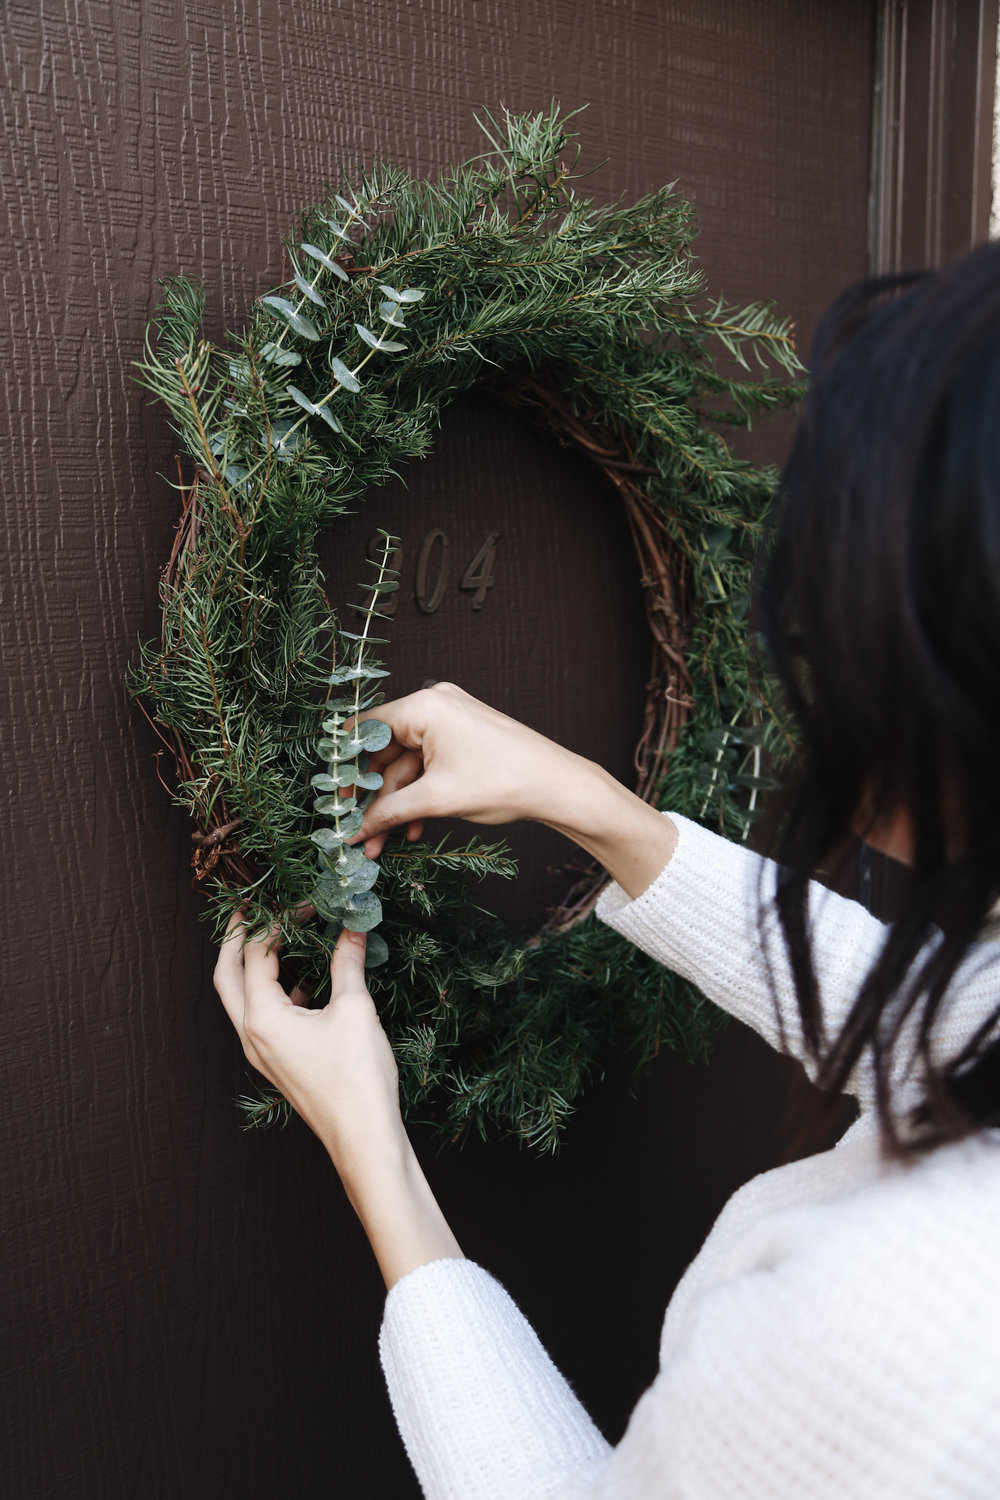 diy natural christmas wreath ideas.jpg